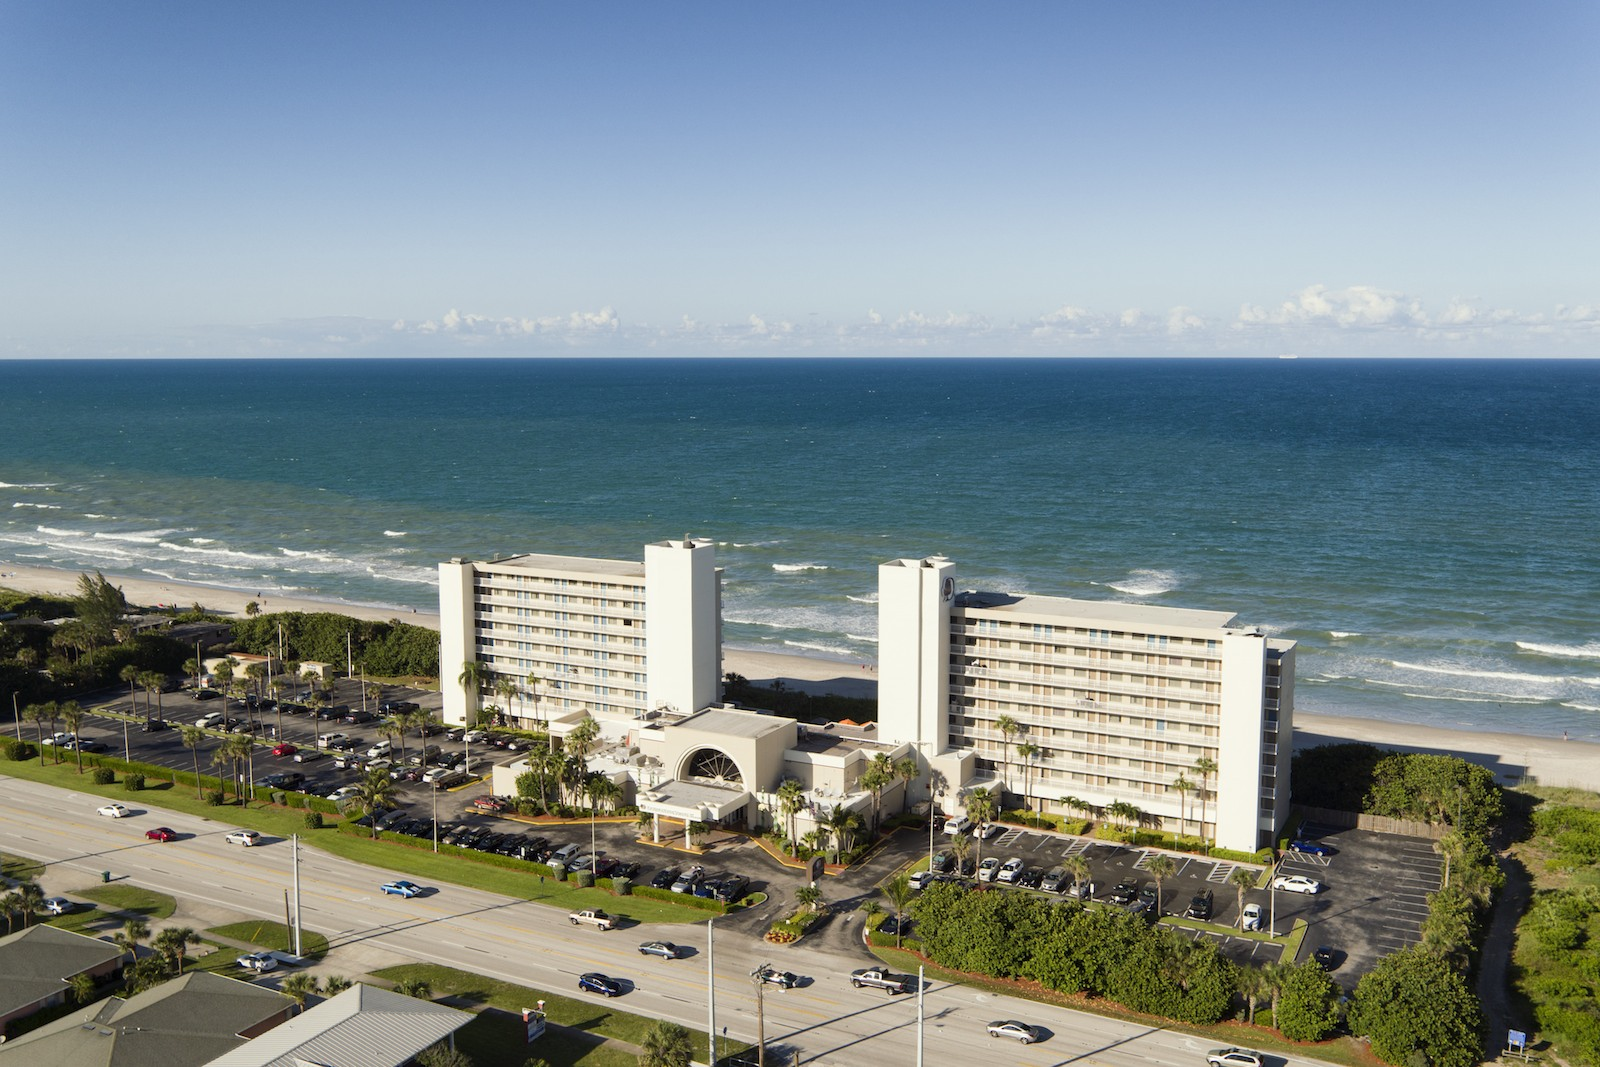 DoubleTree Hotel Melbourne Beach Oceanfront, FL, USA